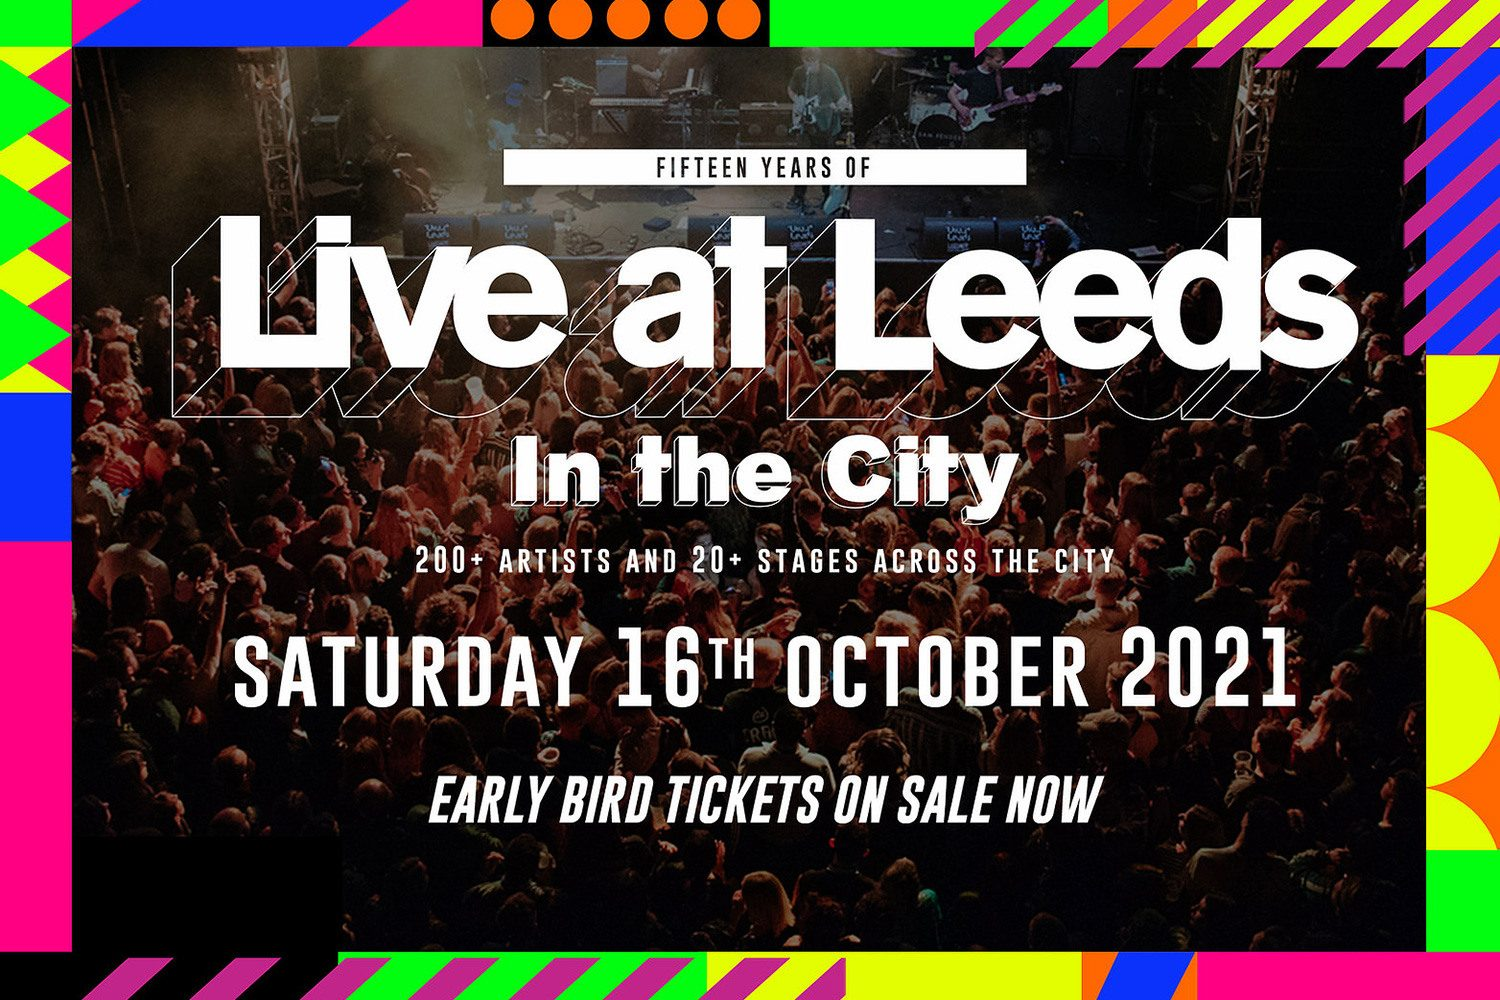 Live At Leeds has confirmed it will be going ahead this year